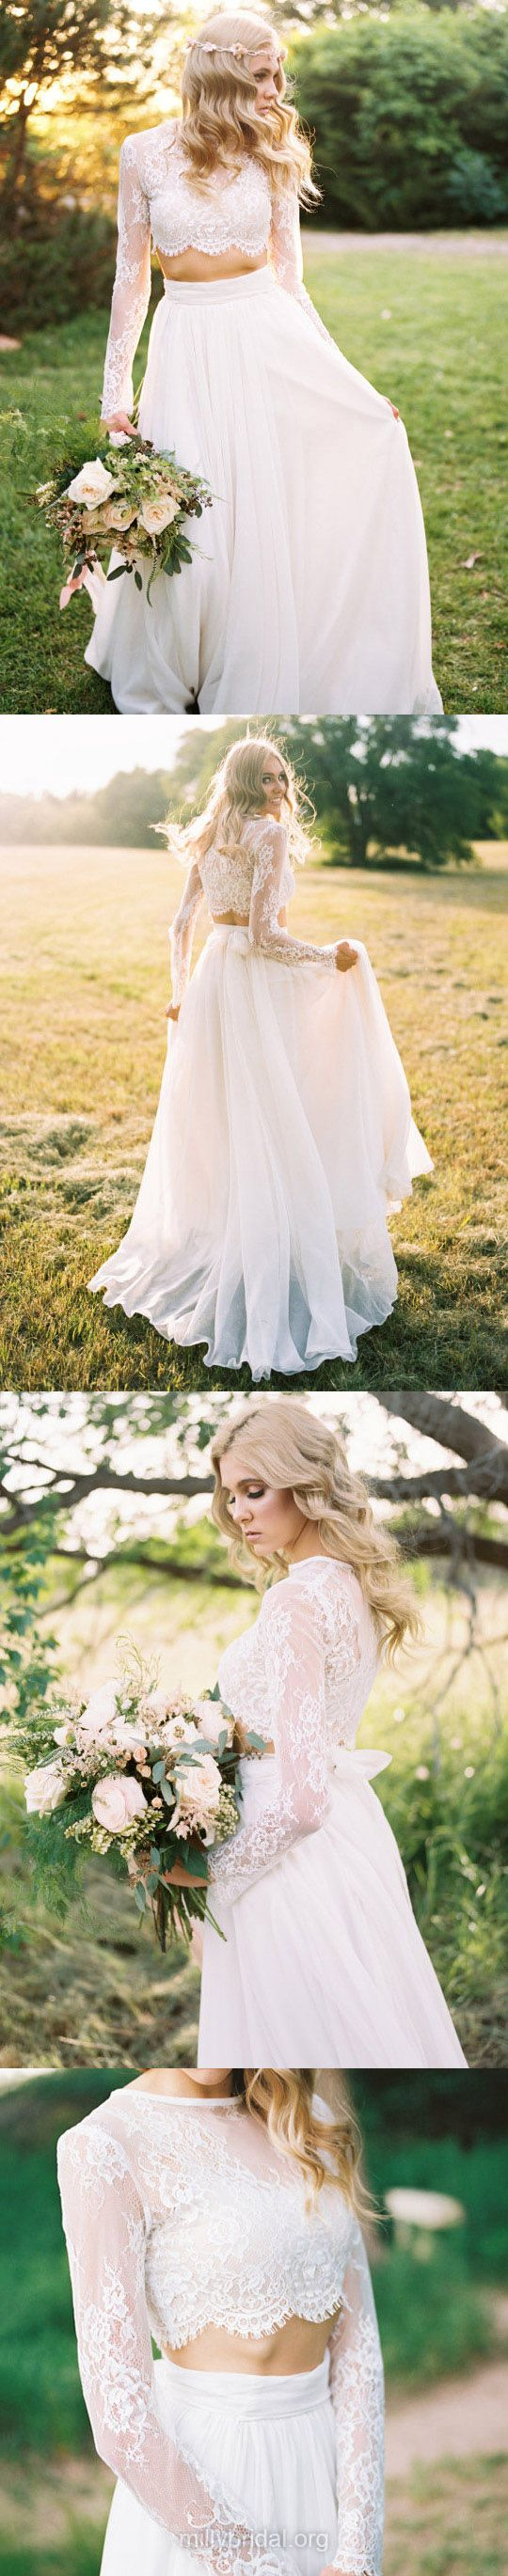 Two Piece Wedding Dresses Lace, Long Sleeve Bridal Gowns A-line, Scoop Neck Wedding Dress Chiffon Tulle